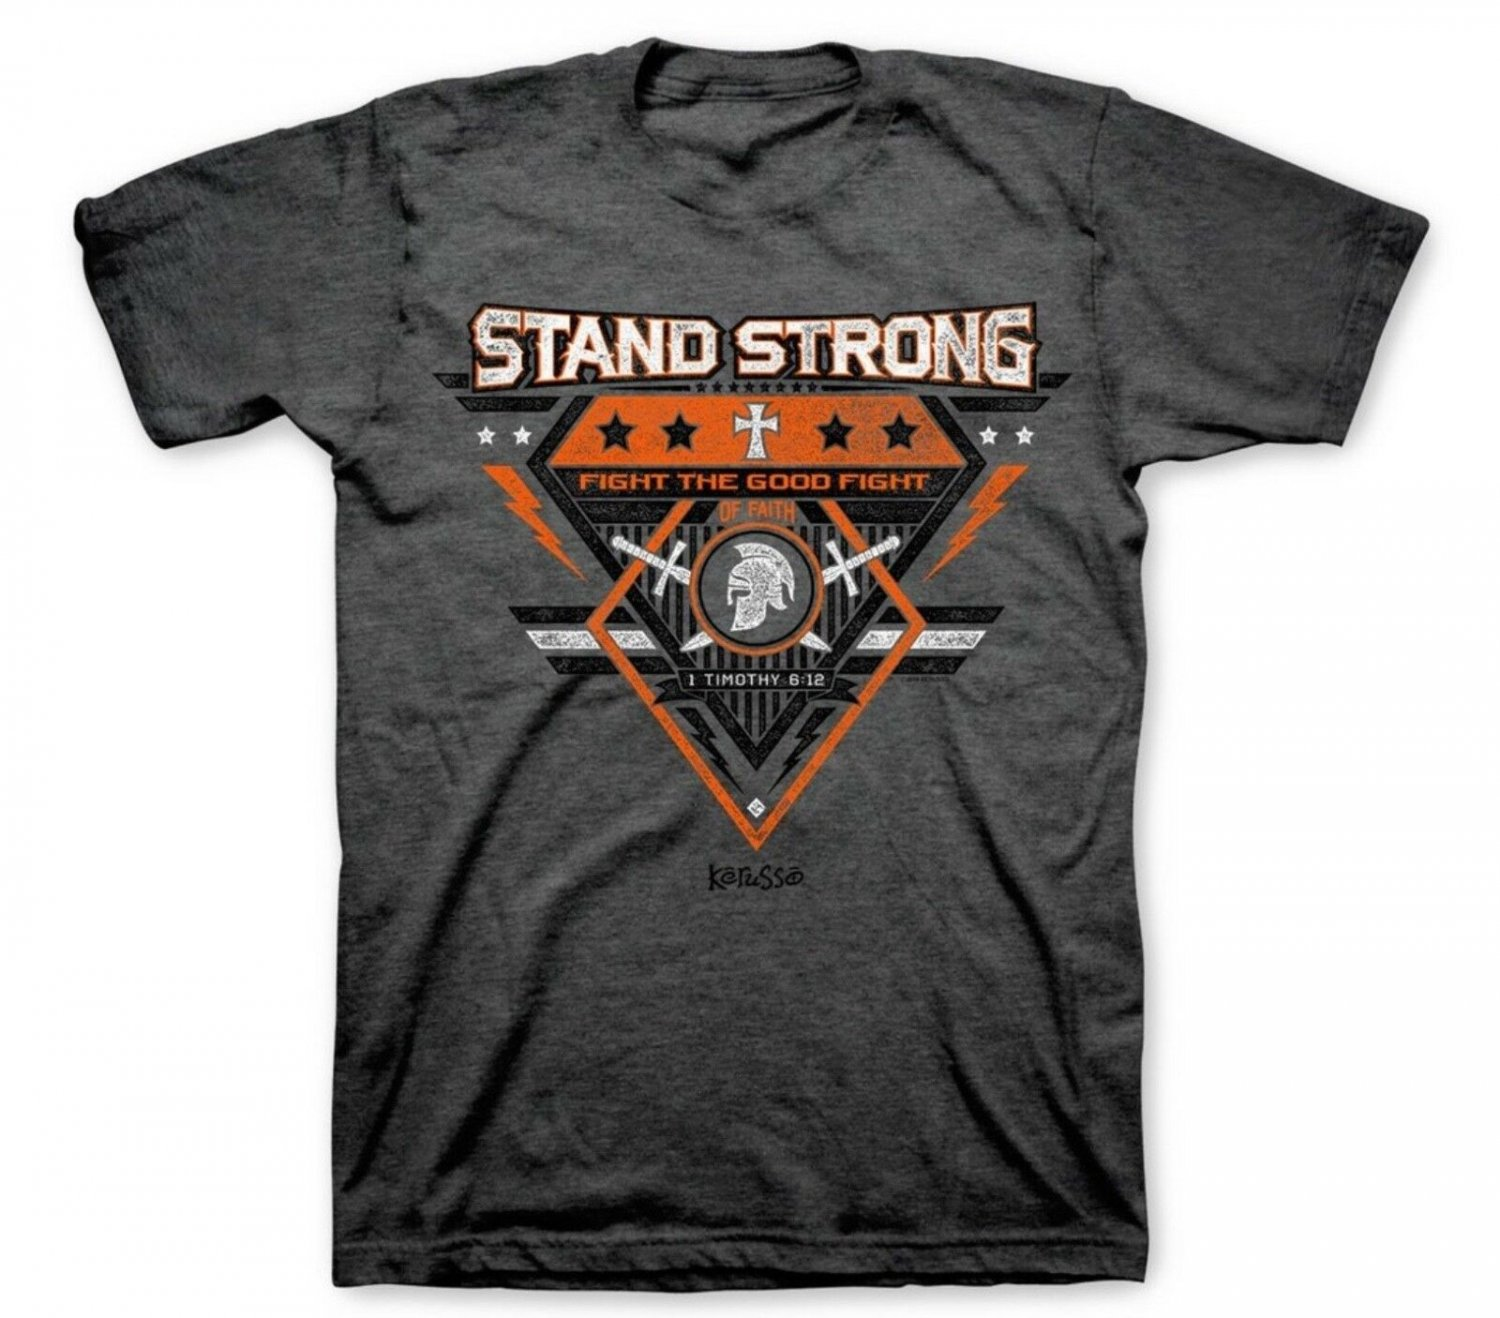 Stand Strong - Christian TShirt - NEW!!